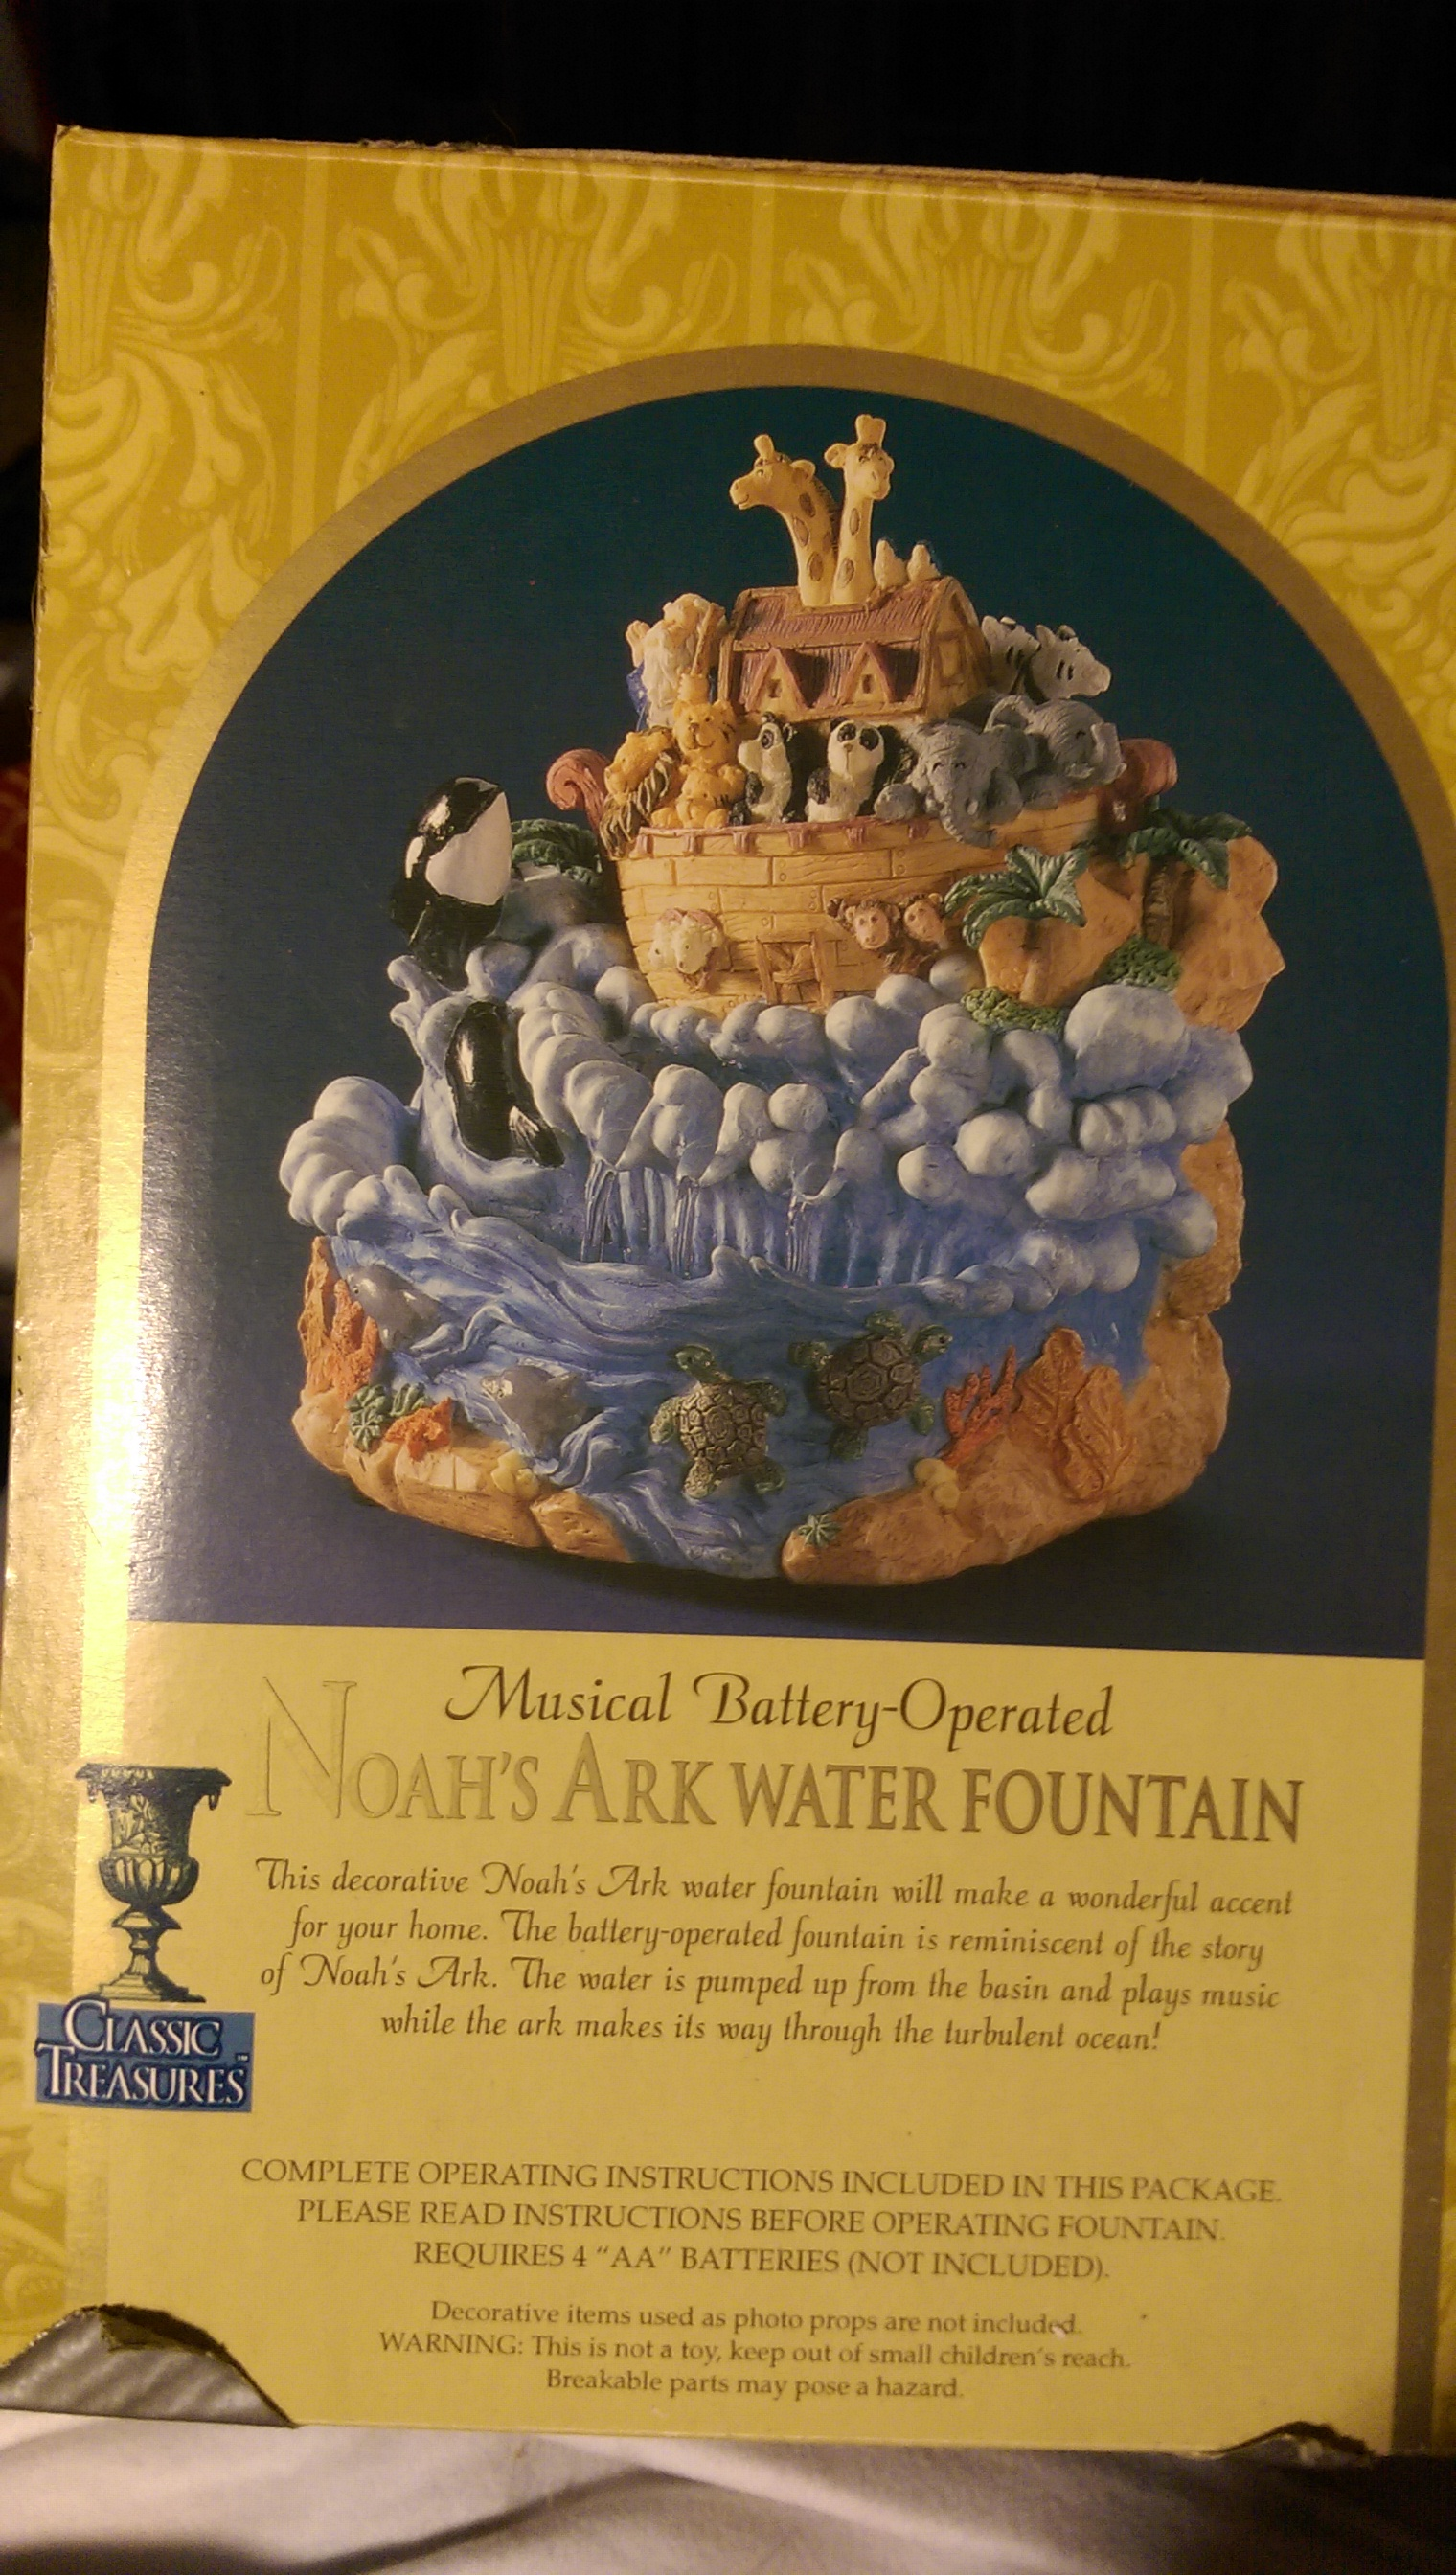 Noah's Ark Water Fountain Snowglobe back image (back cover, second image)